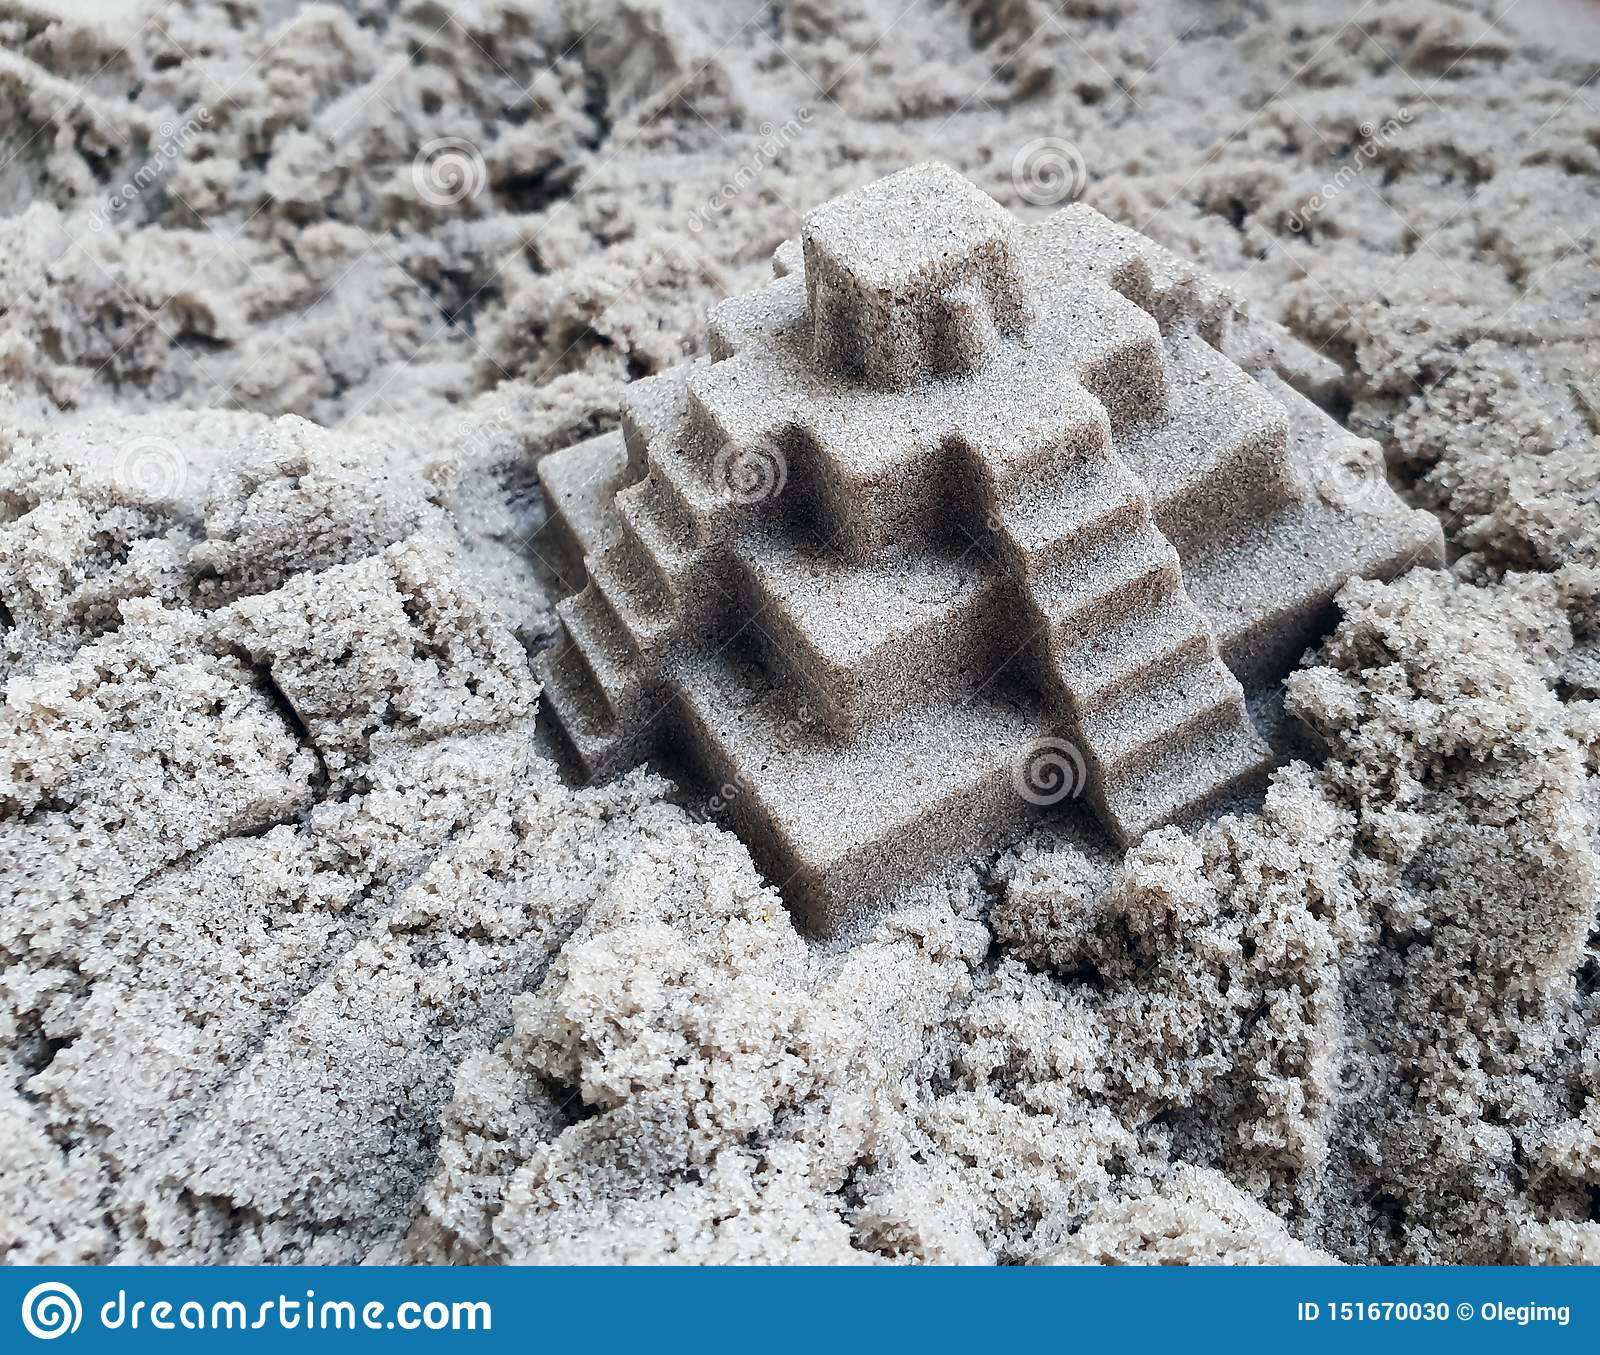 Kinetic sand for children ideal for playing in the yard. Creativity texture